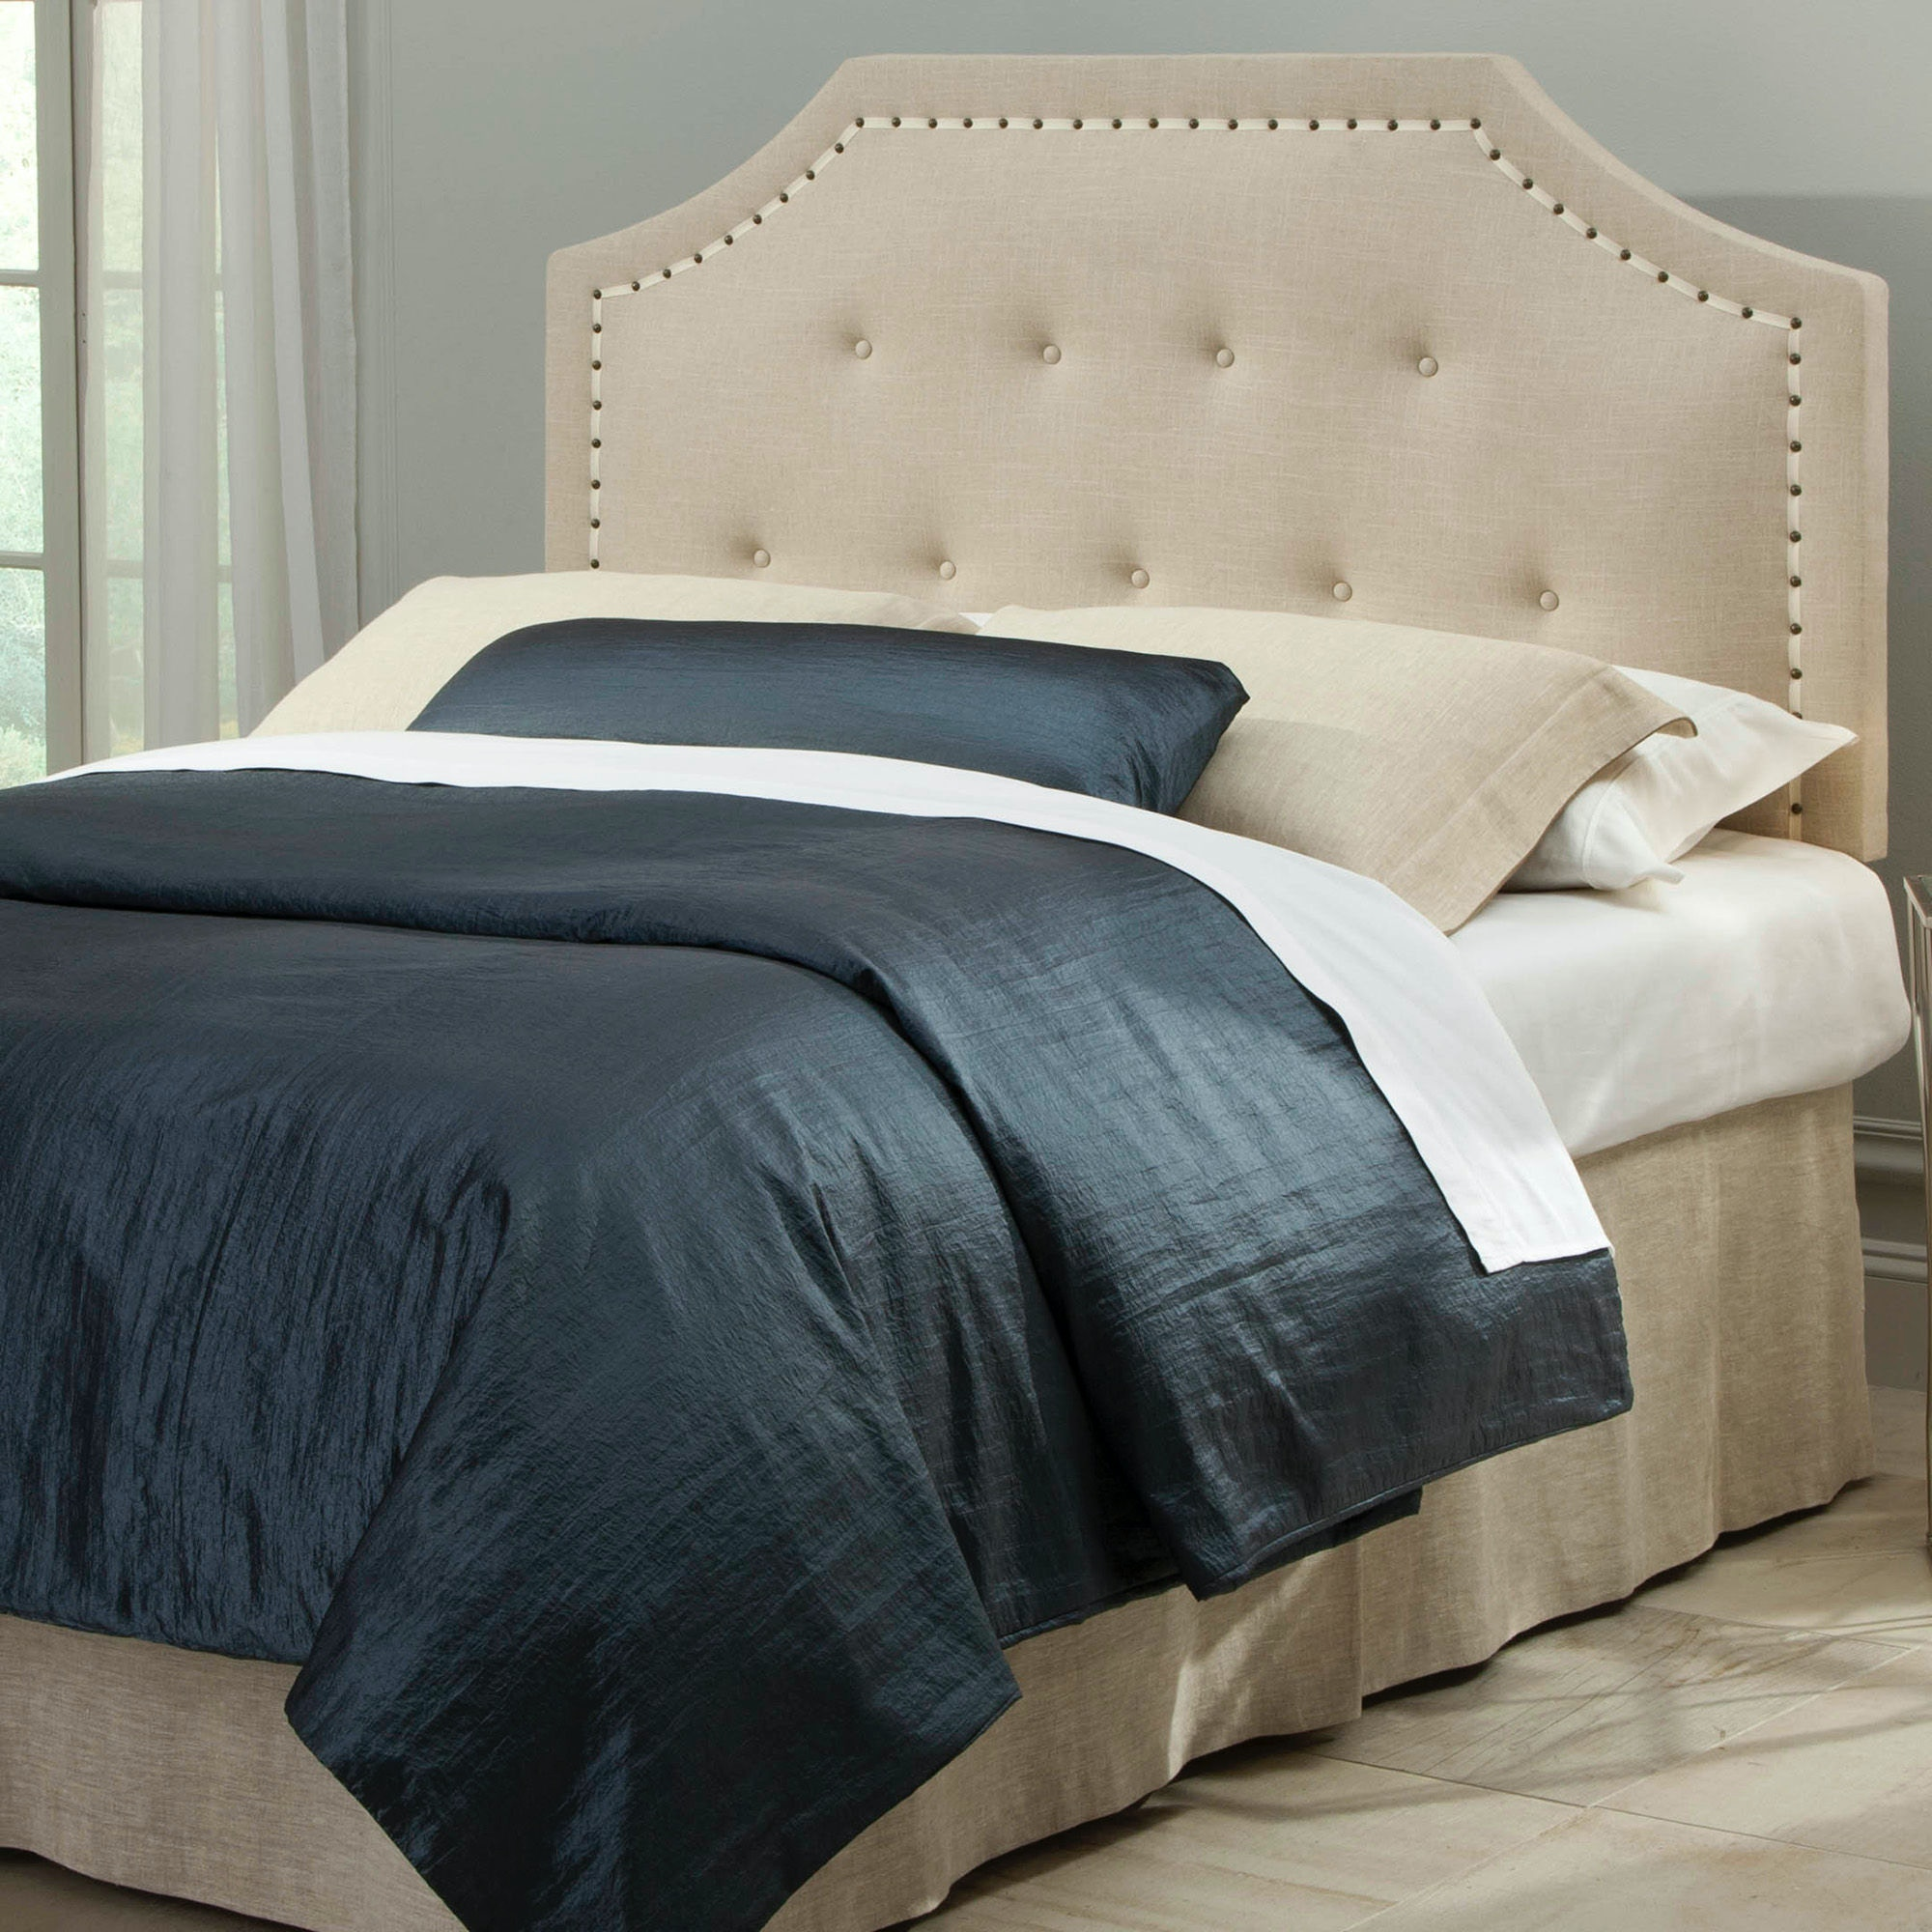 Fashion Bed Group Avignon Upholstered Adjustable Headboard With Button  Tufting And Contrast Tape Nail Head Trim ...